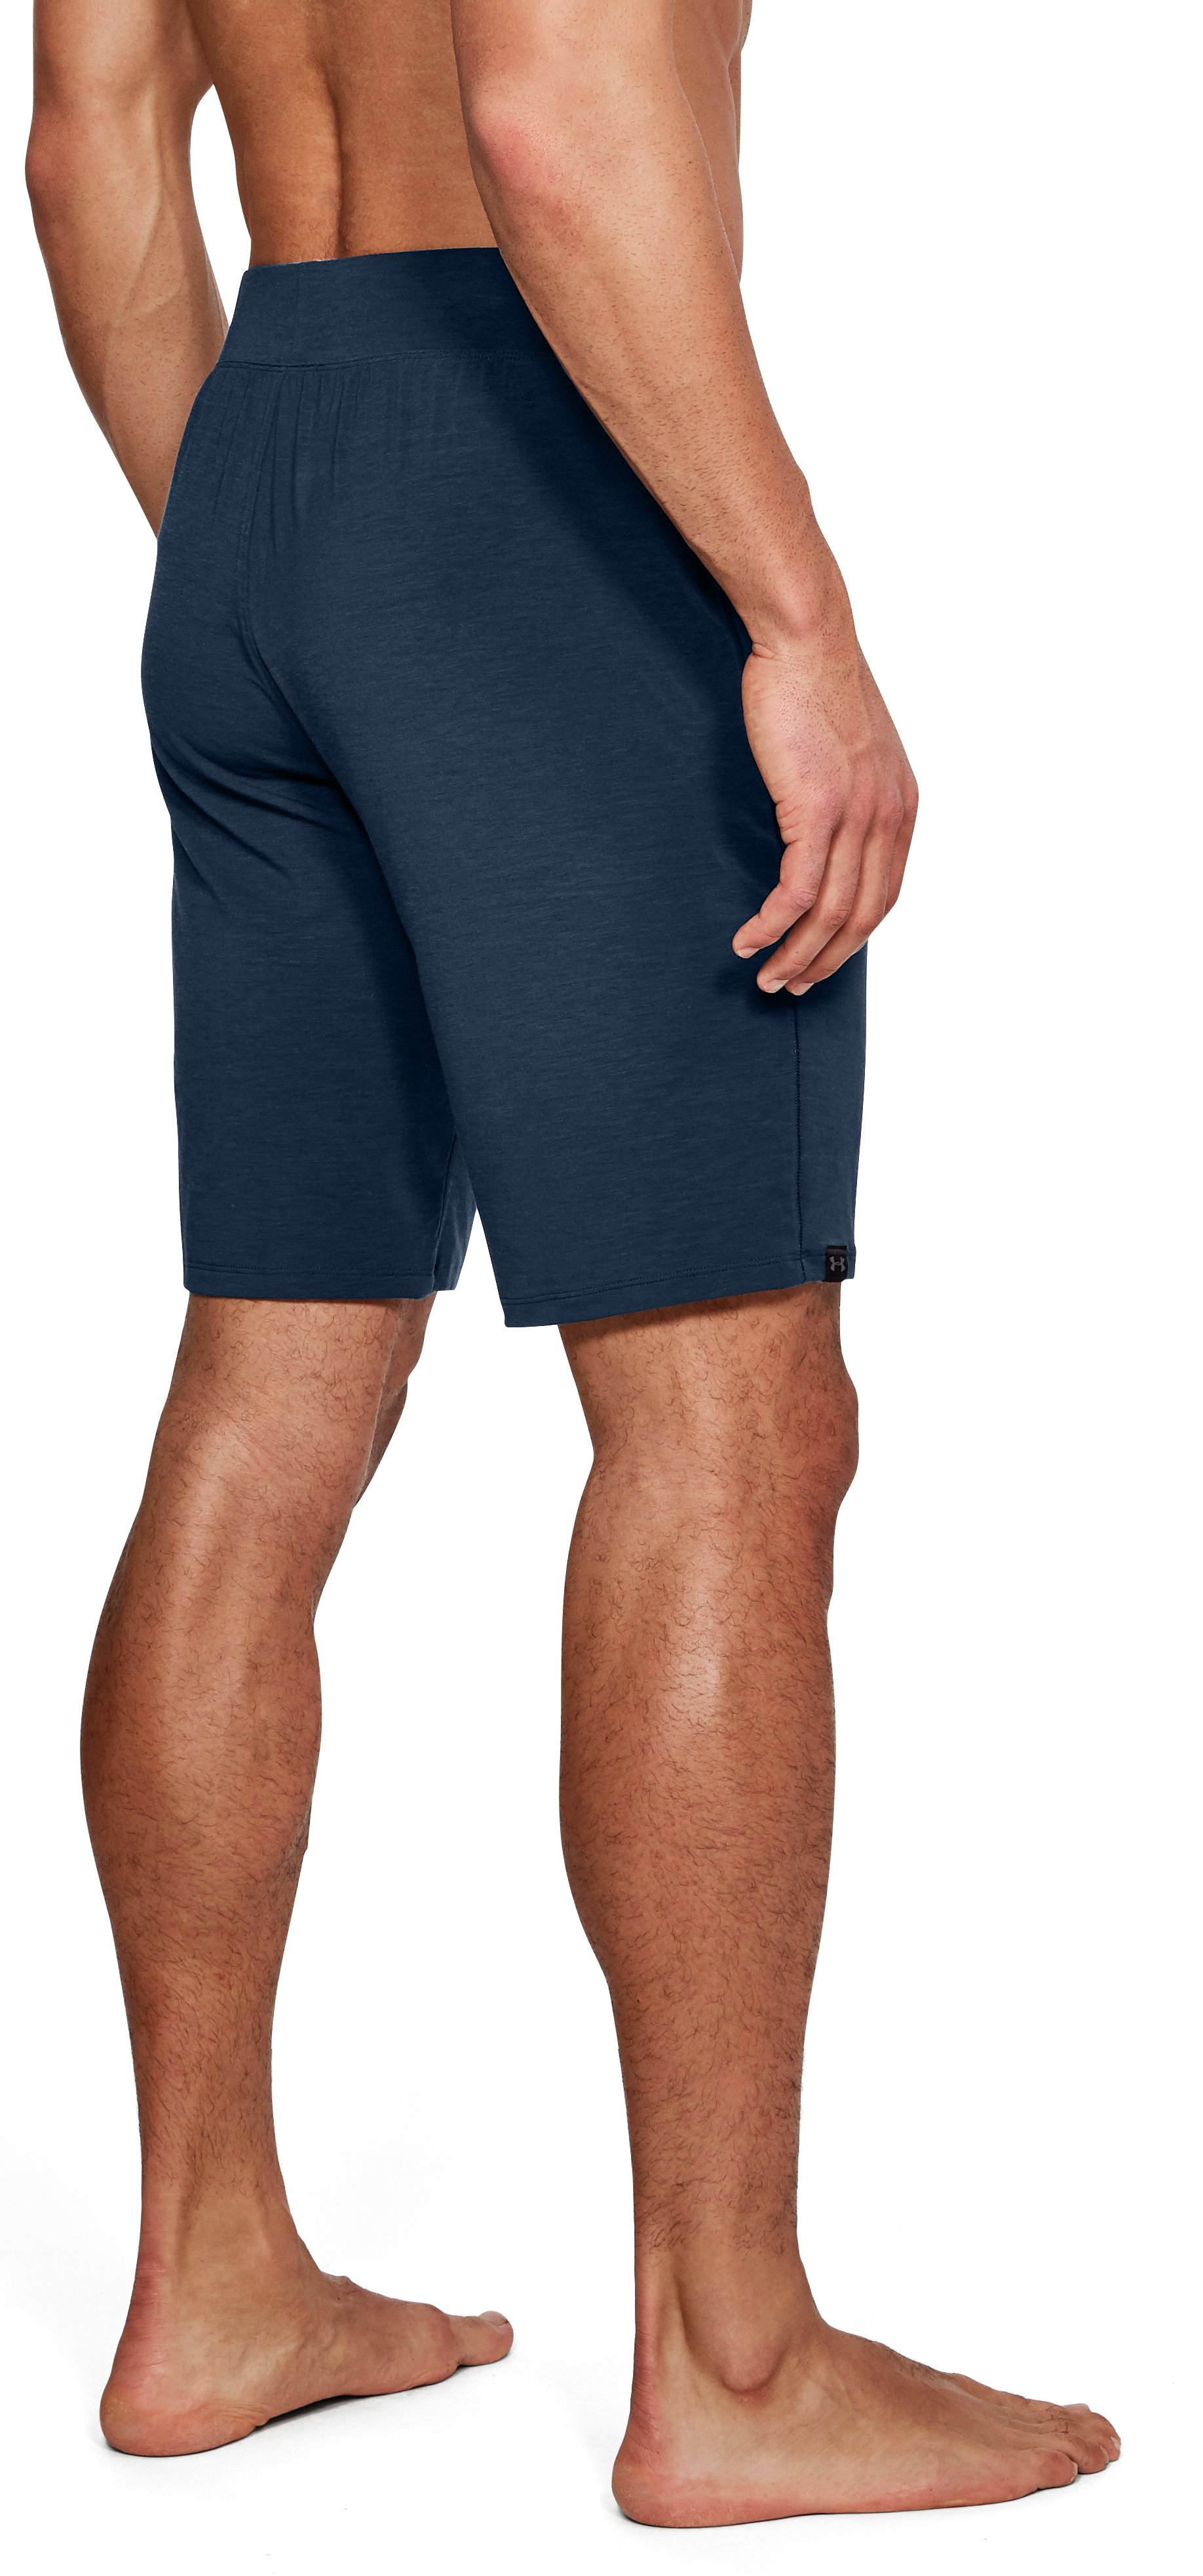 Men's Athlete Recovery Sleepwear Shorts, Academy, undefined